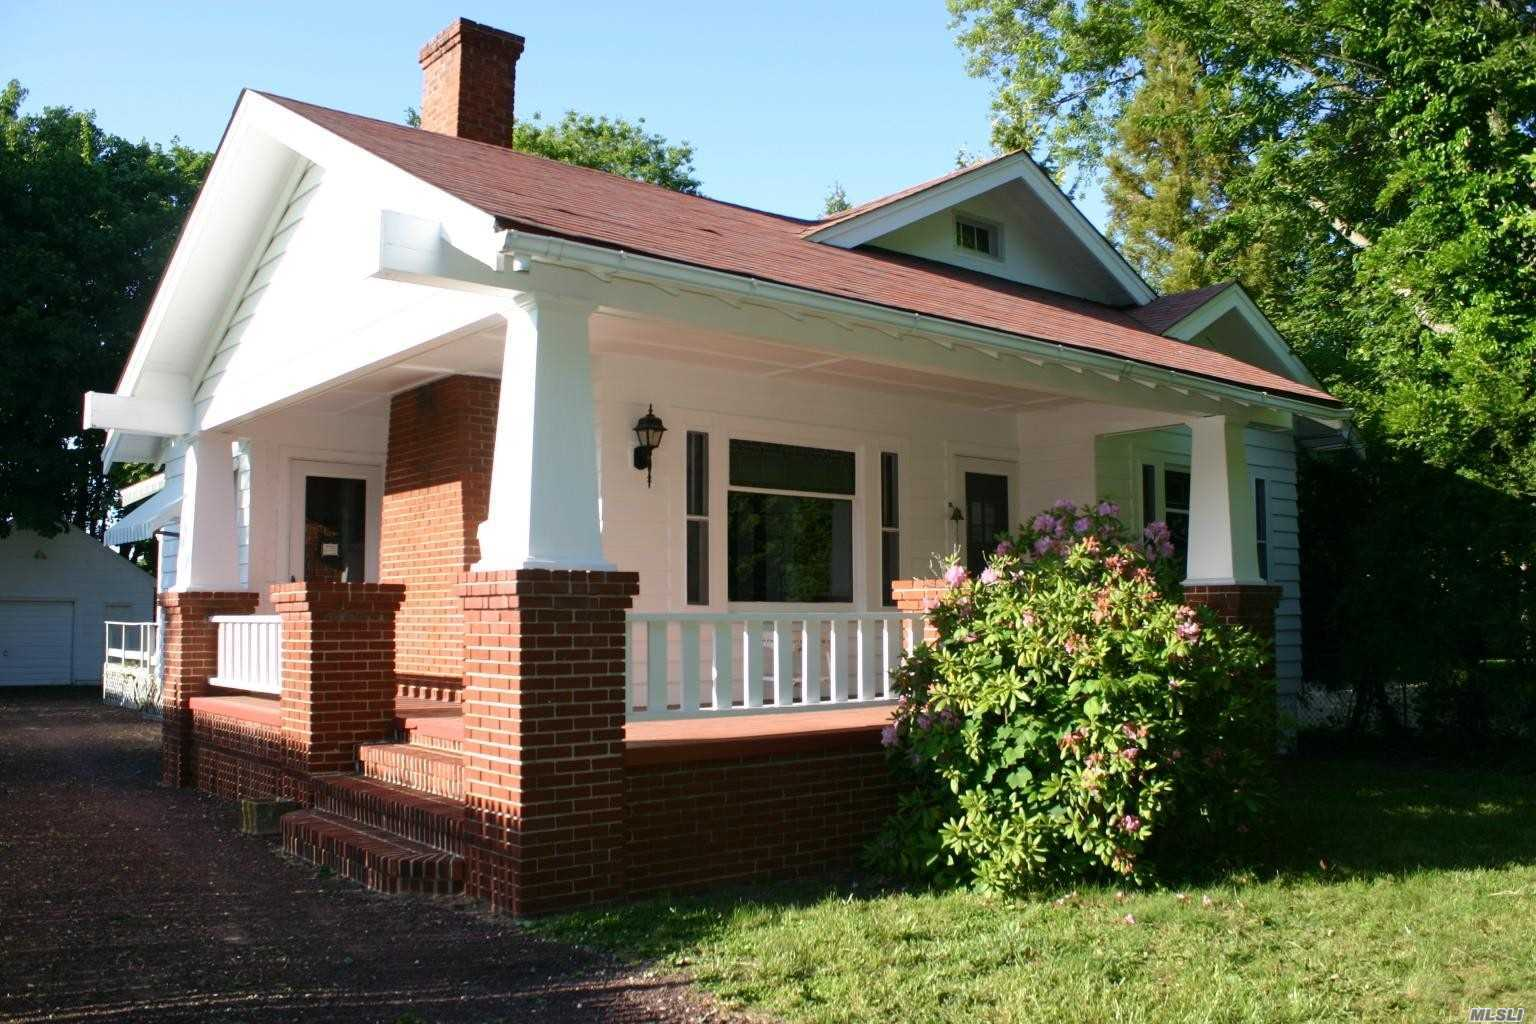 $25, 000 Price Reduction!! 3 Bedroom Craftsman Bungalow Home Has Plenty Of Old World Charm Such As Stained Glass Windows, Solid Wood Doors, Hard Wood Floors, 9 Foot Ceilings. The Front Bedroom/Sitting Room Has No Closet. 10 Year Old Roof Shingle, Oil Burner 12 Years Old, 1/2 Mile To Fifth Street Beach And Park. This Home Is Outside The Village, But Has Village Utilities Including Sewers.